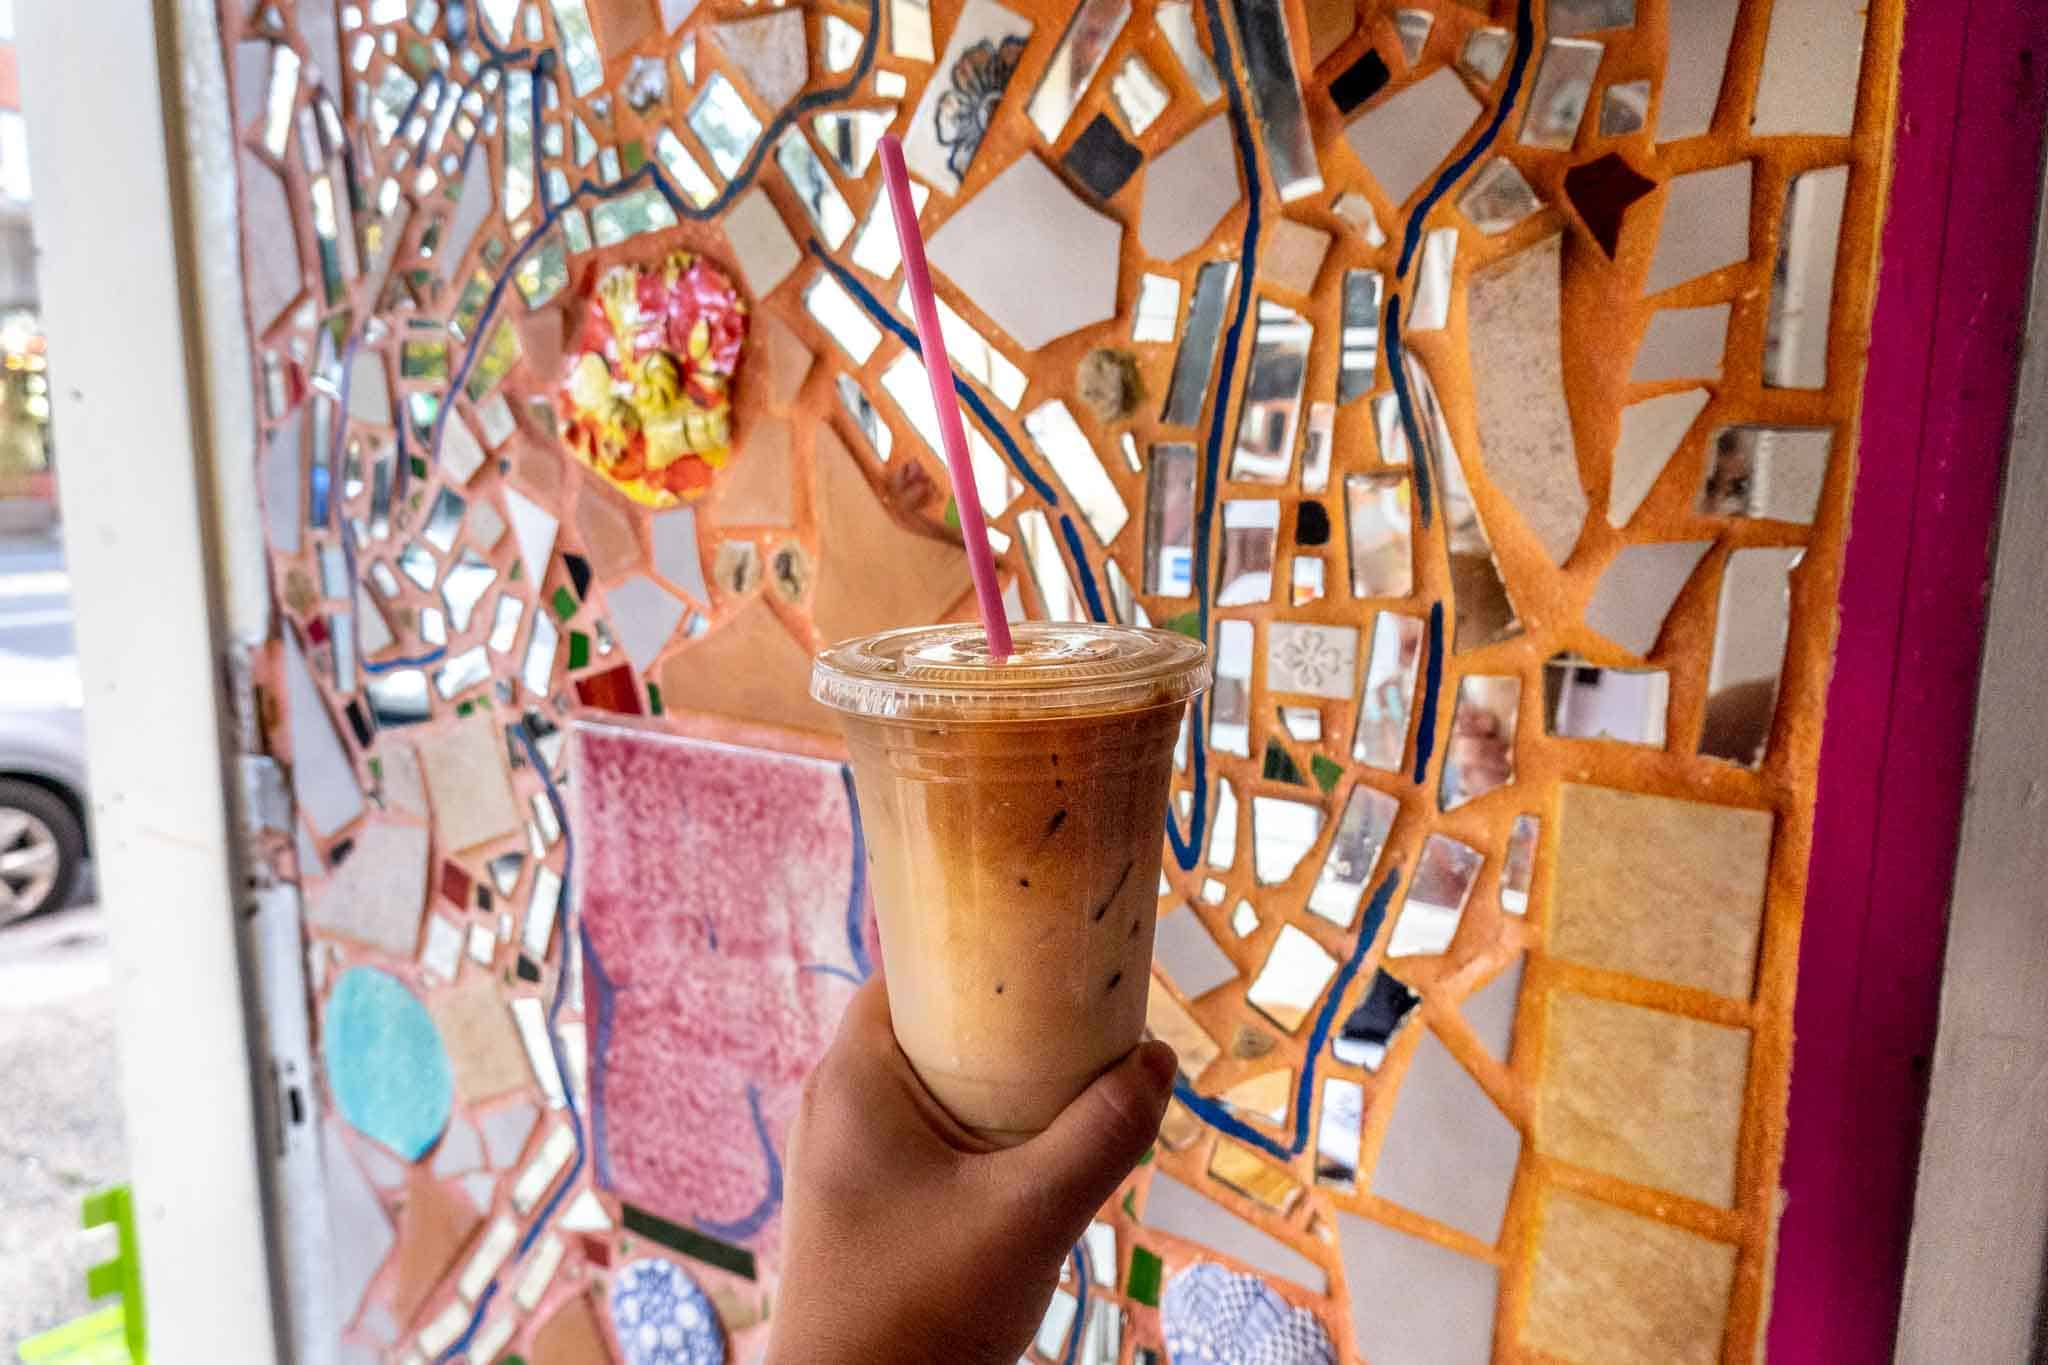 Hand holding a cup in front of a mosaic wall